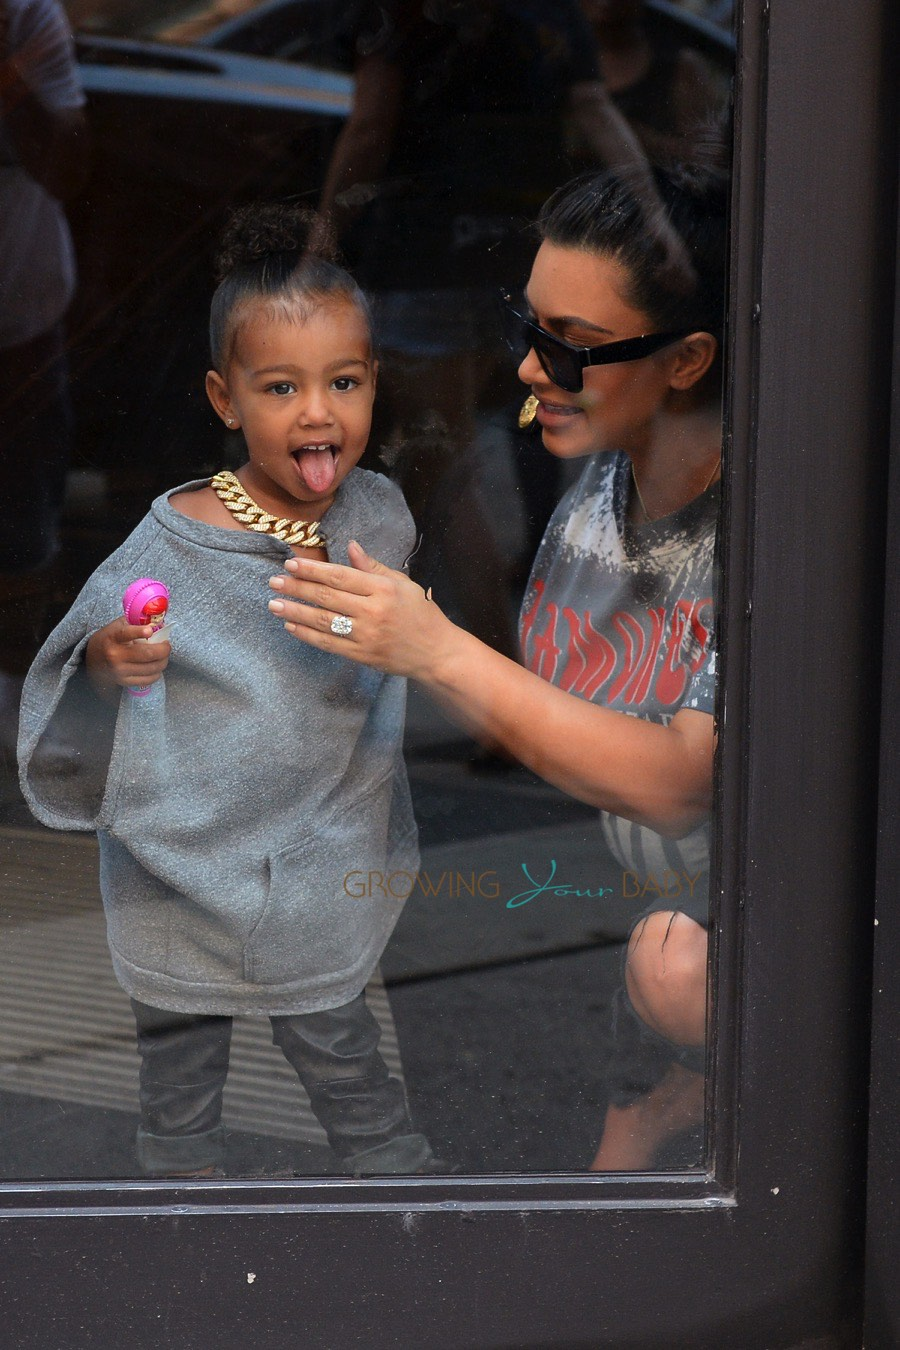 Pregnant Kim Kardashian And Daughter North West At Toys R Us Growing Your Baby